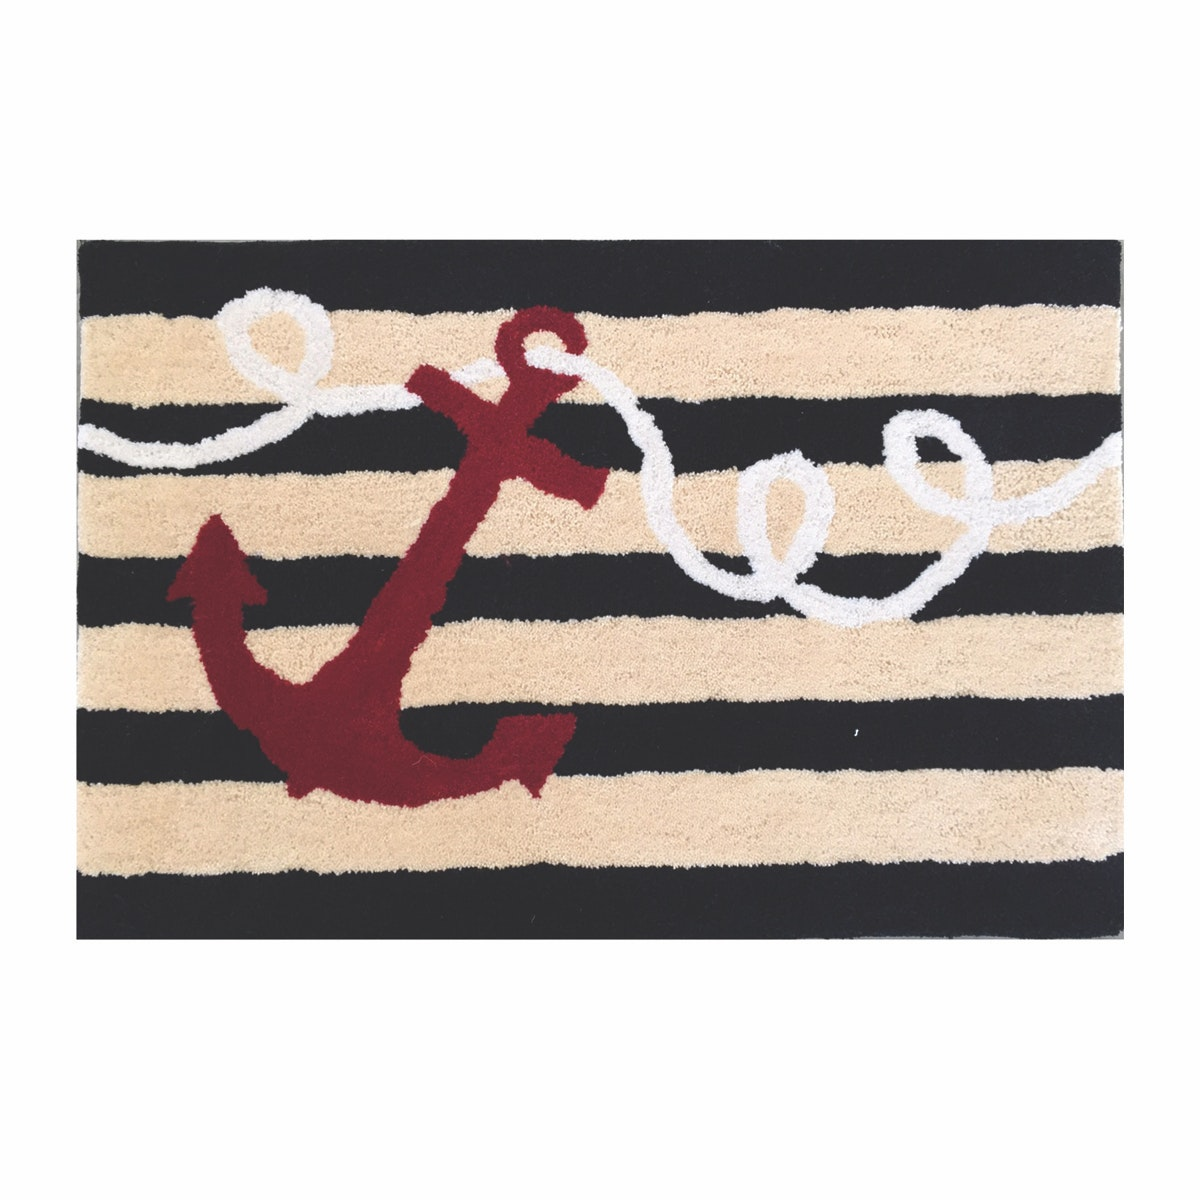 Lanamora Keset Anchor Stripes